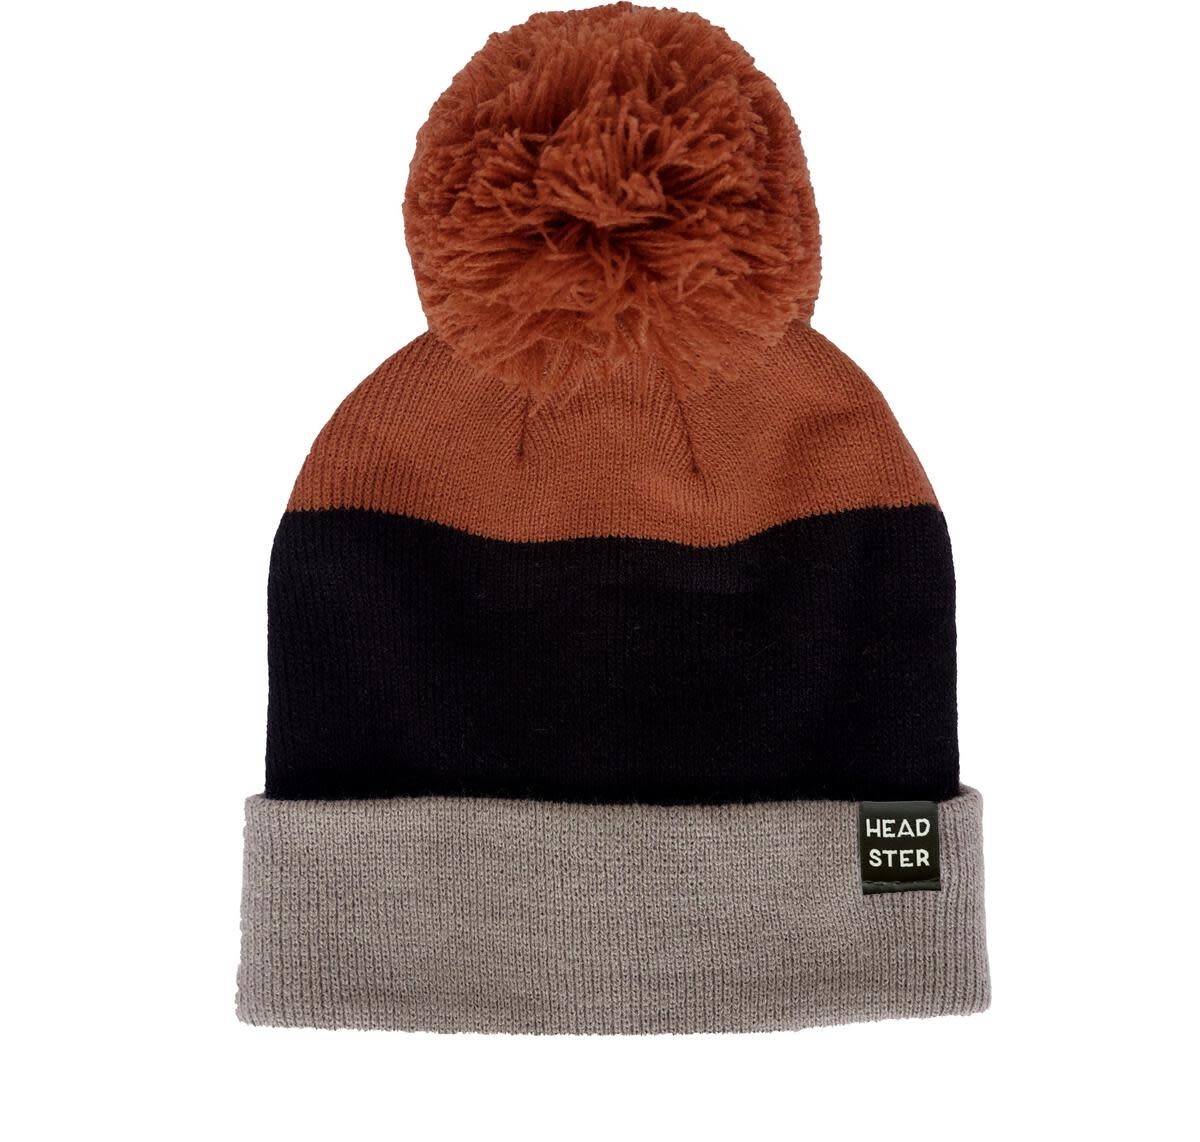 Headster Tri-Colour Ginger Cookie Toque